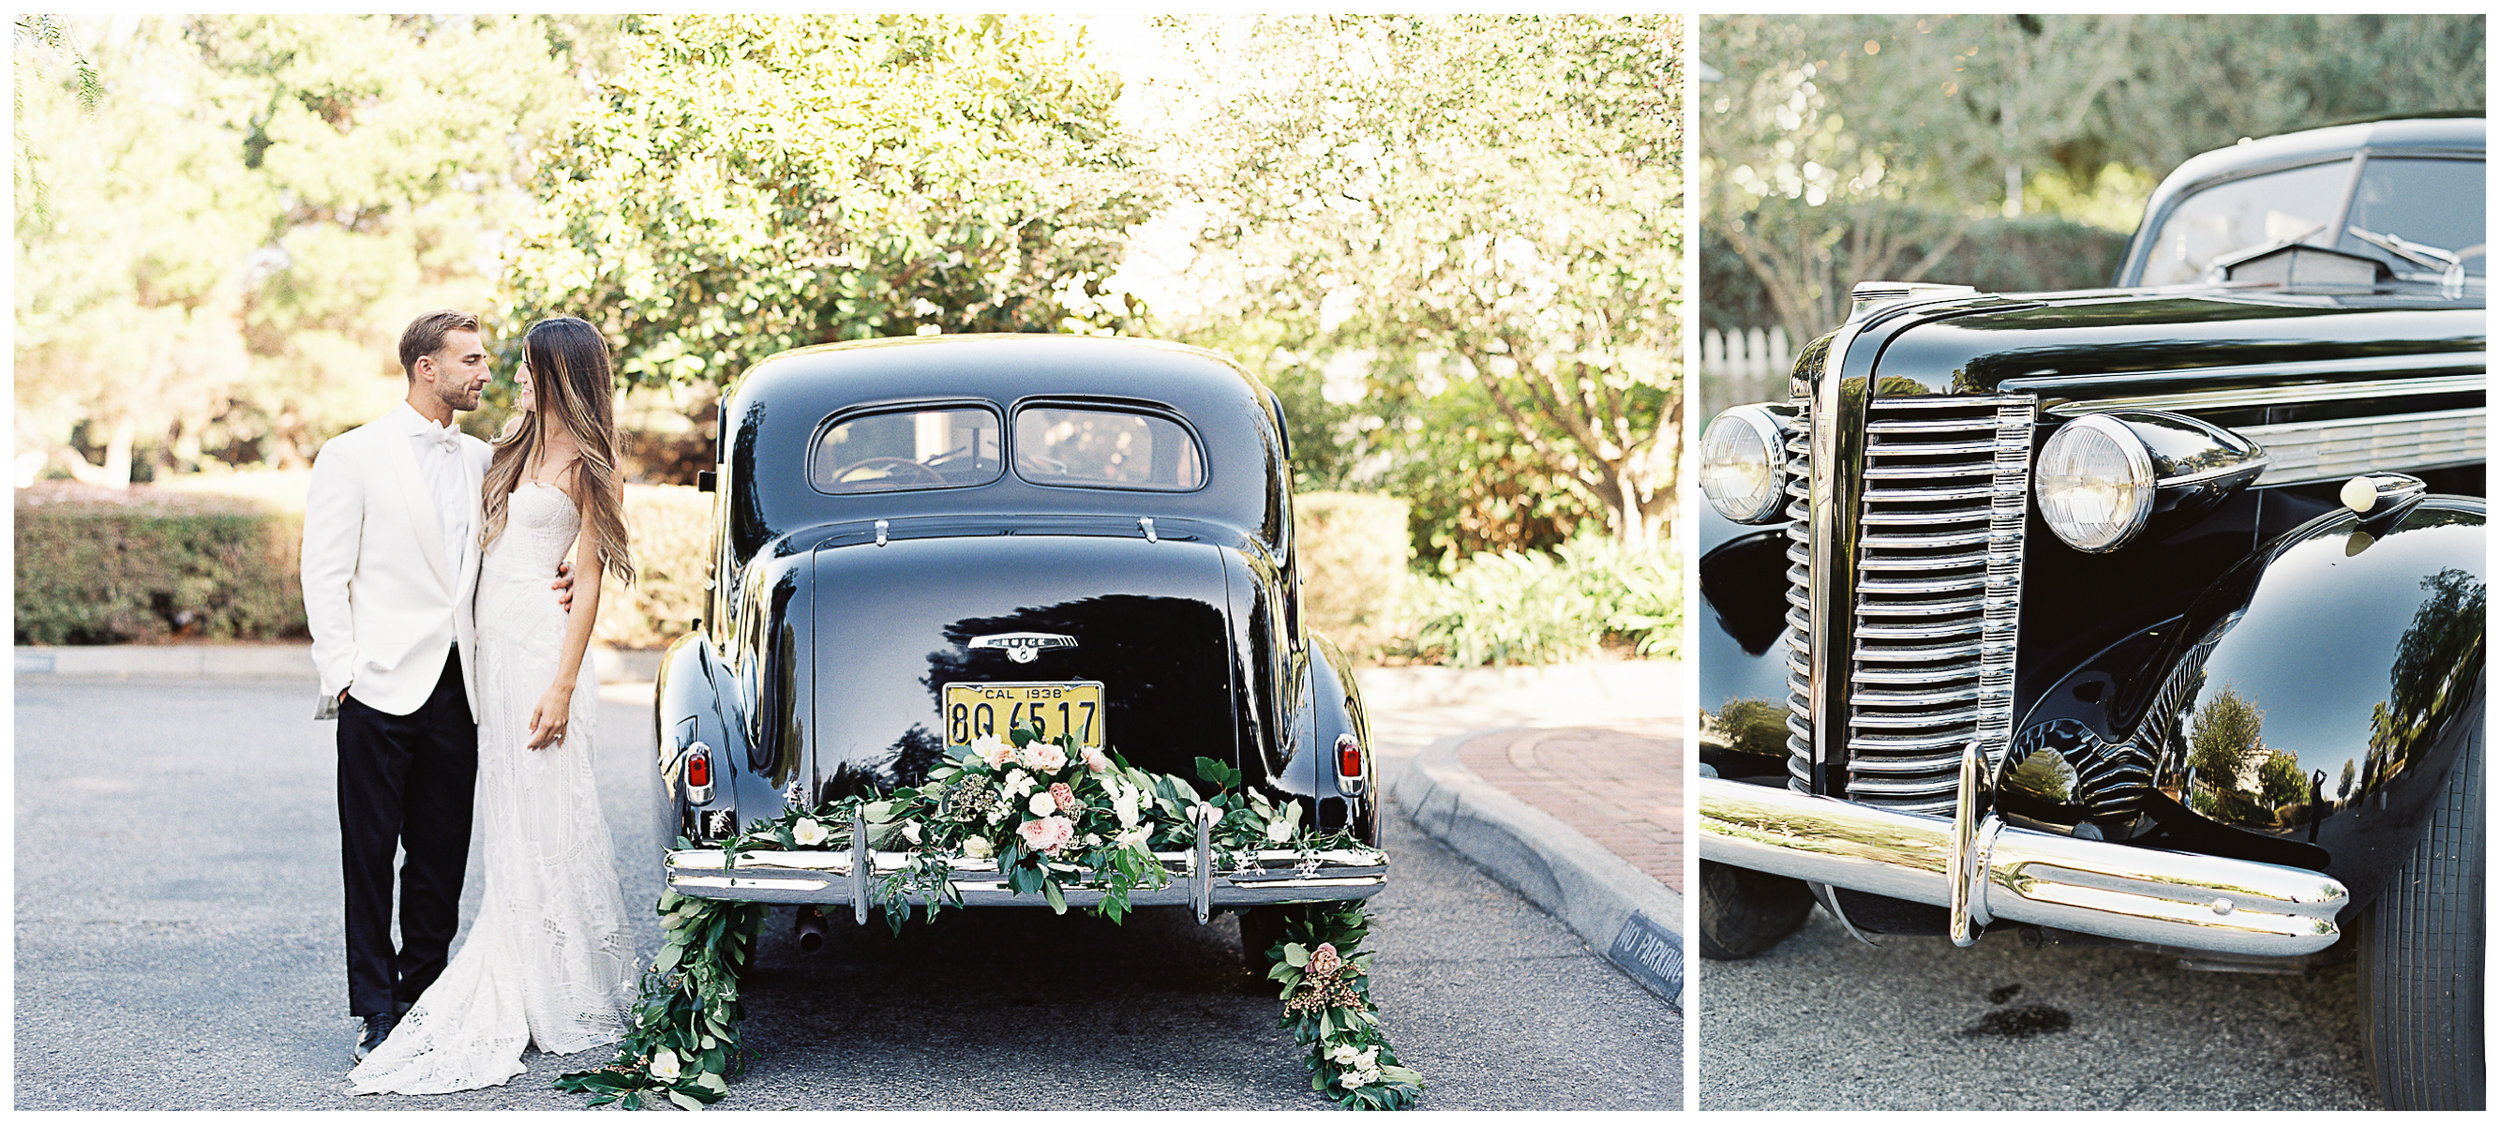 Meghan Mehan Photography - San Francisco Wedding - Film Wedding Photography - 040.jpg